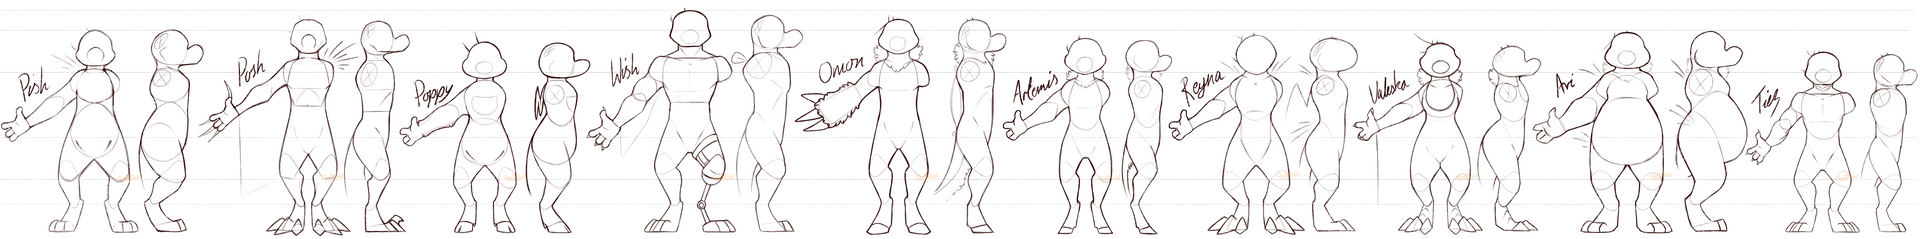 My Biped Gros' Body Types and Heights